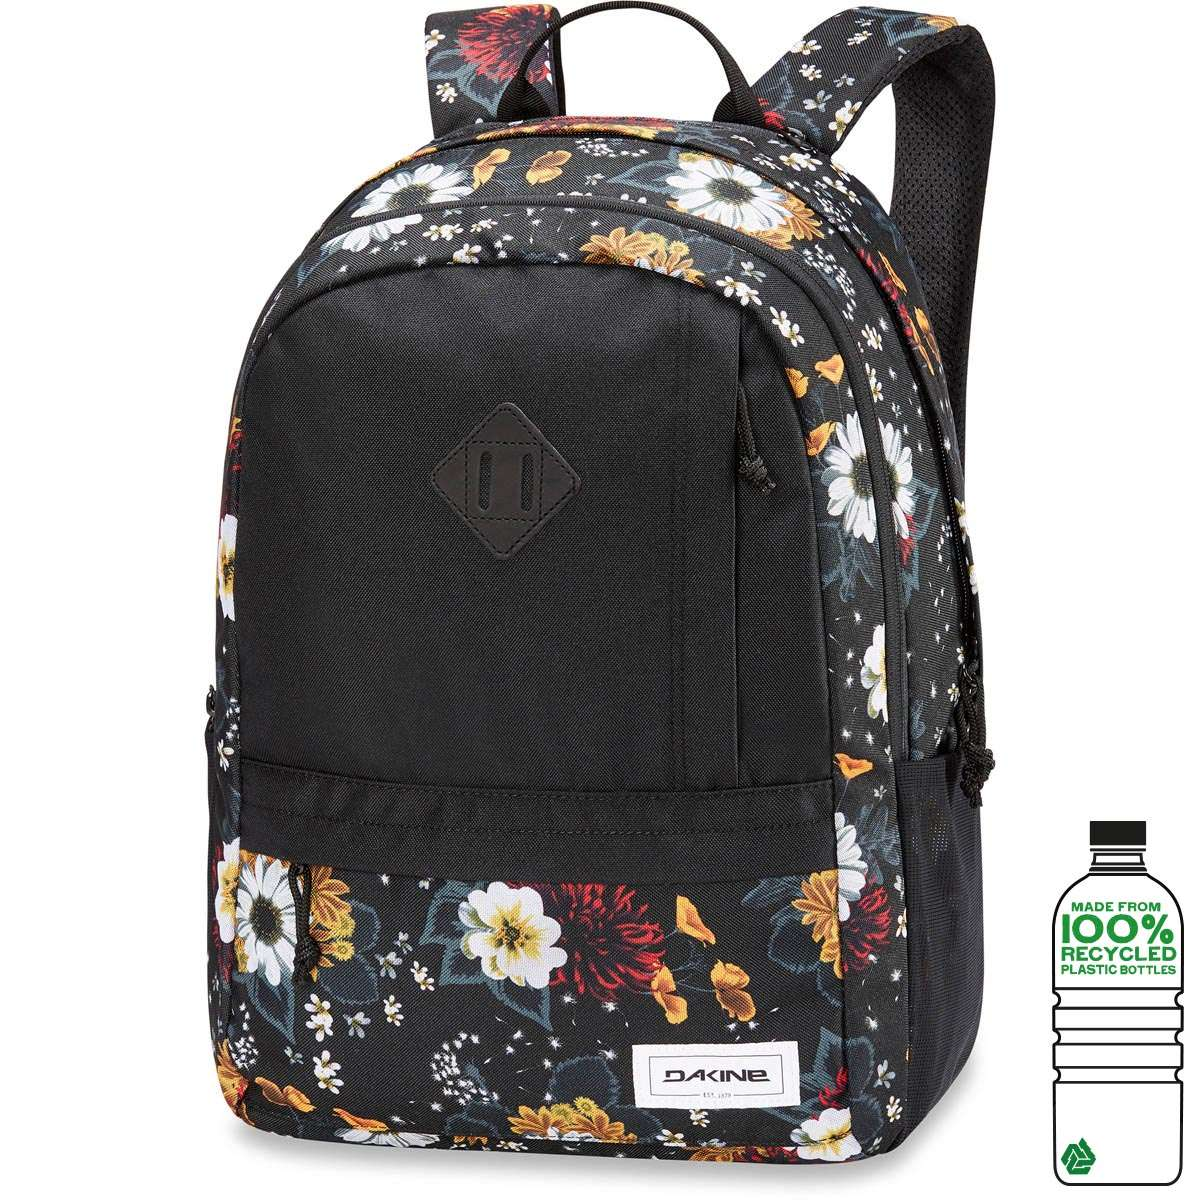 2d4fd75784a6c Dakine Byron 22L Backpack Winter Daisy